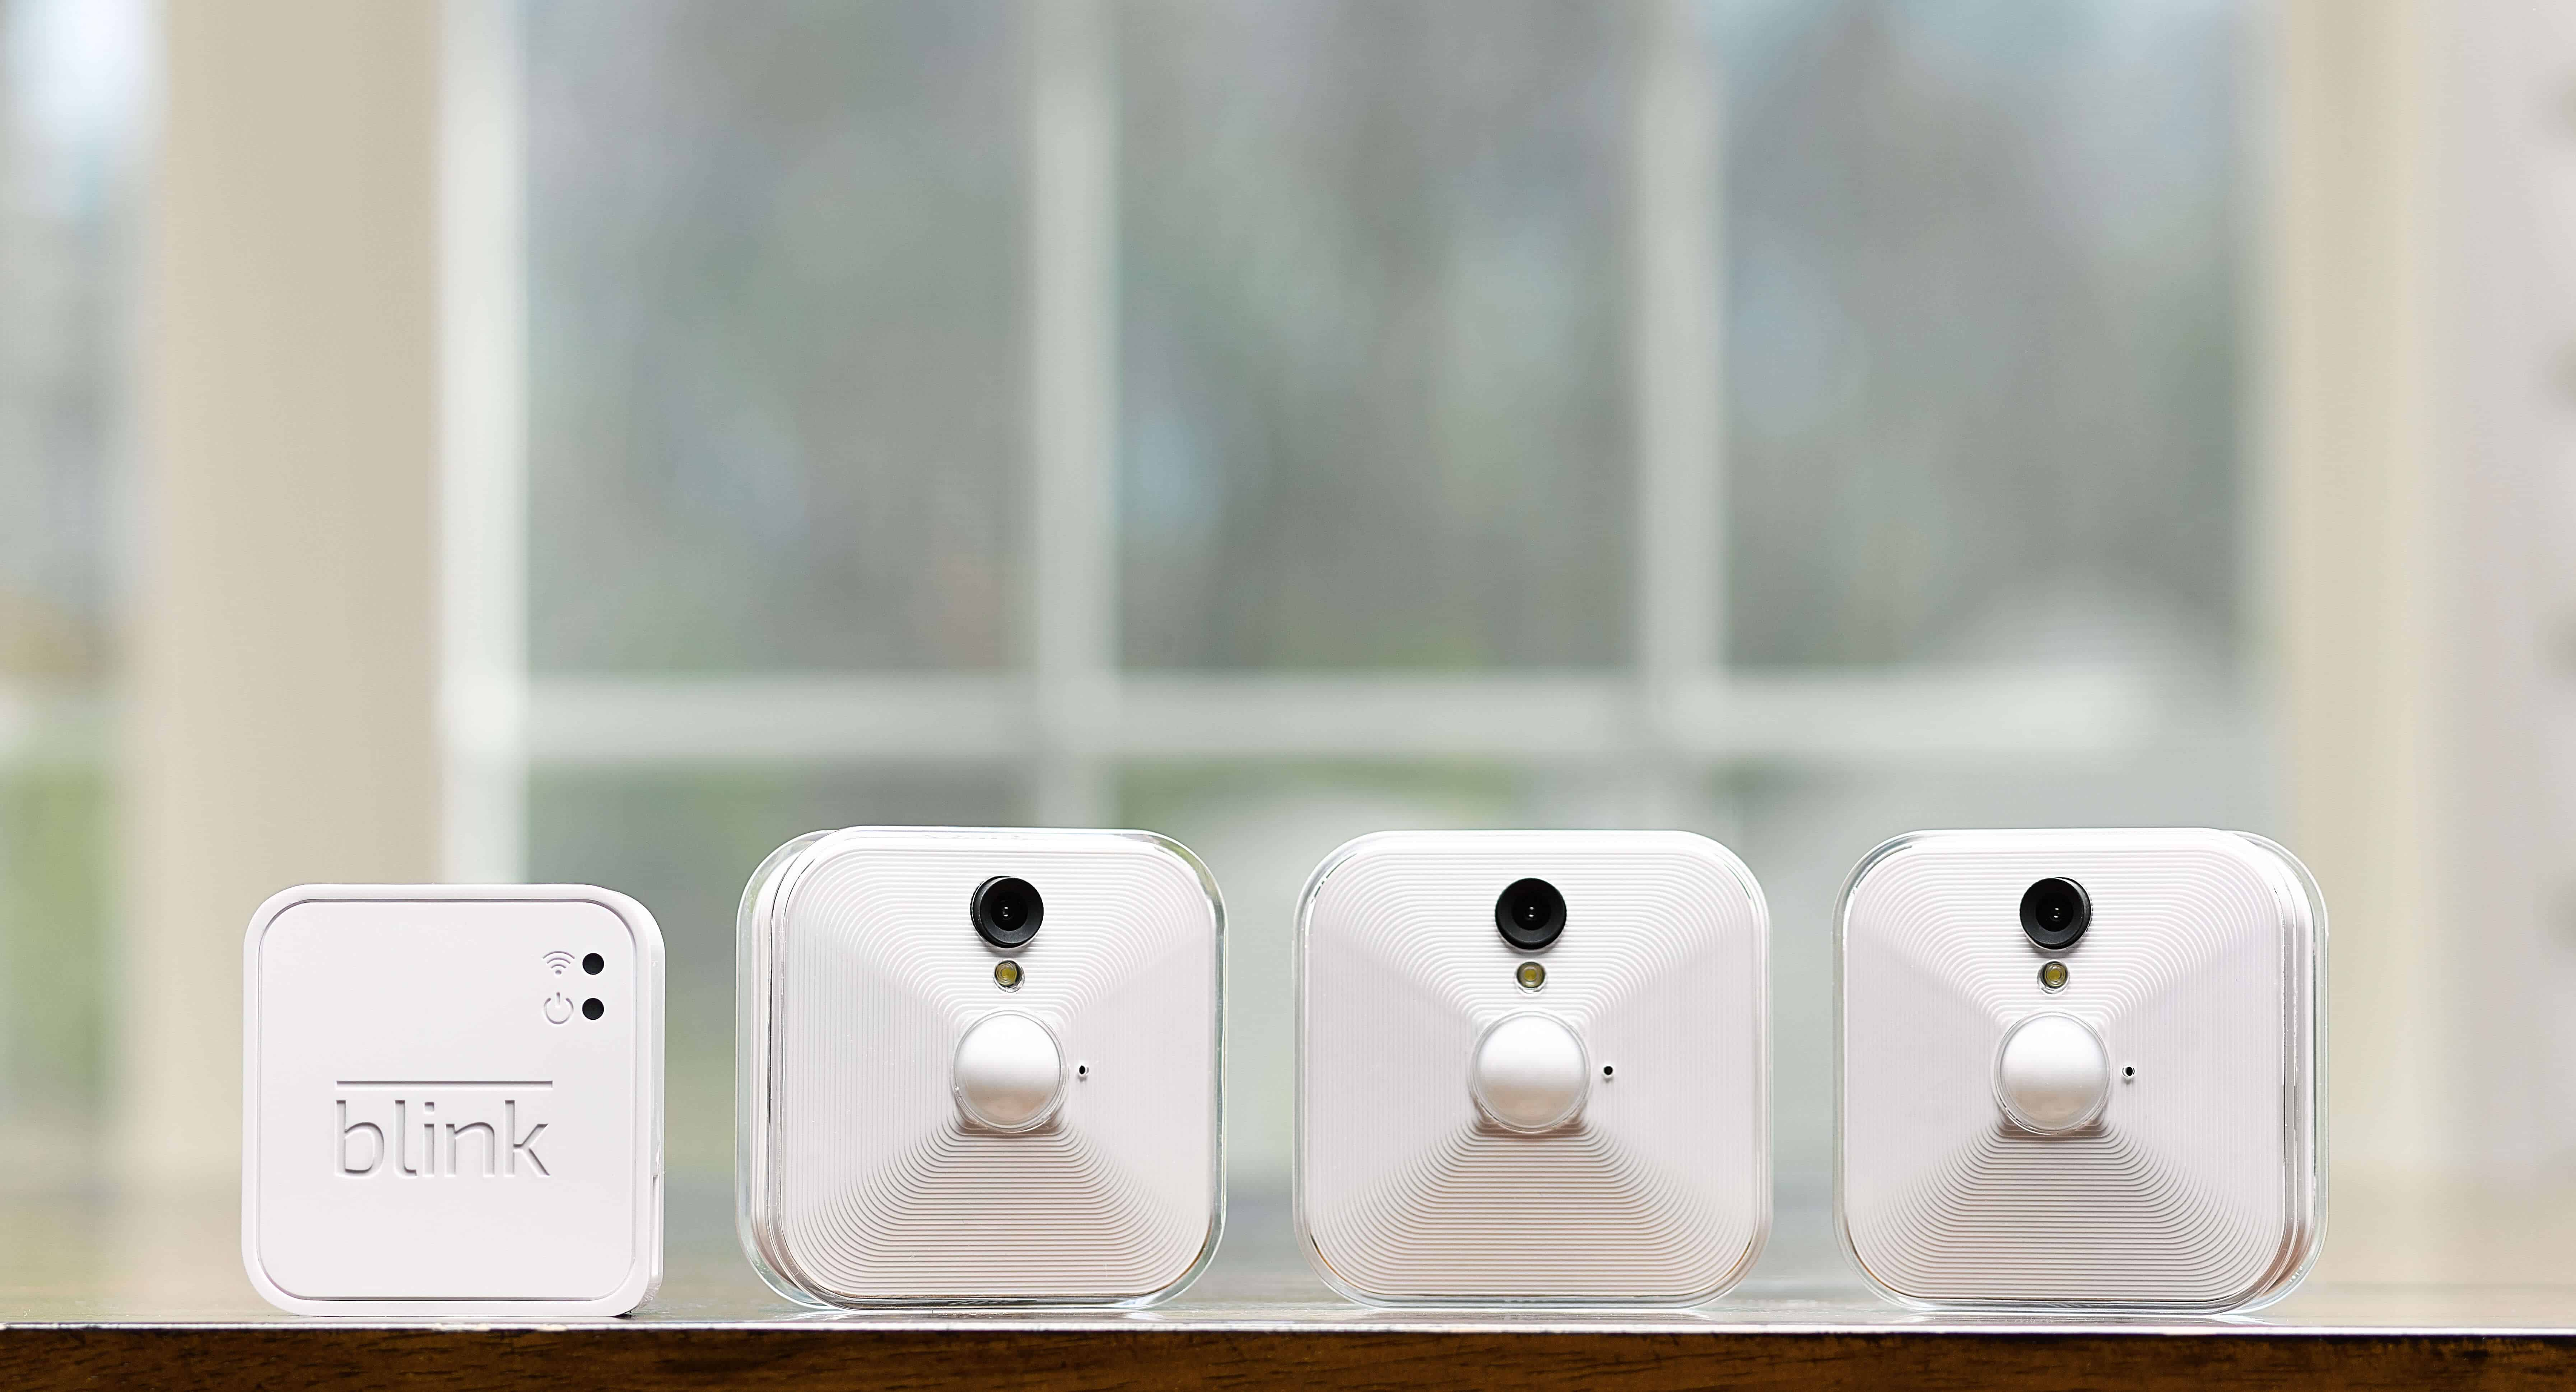 Blink camera review - Easy, affordable, wireless home